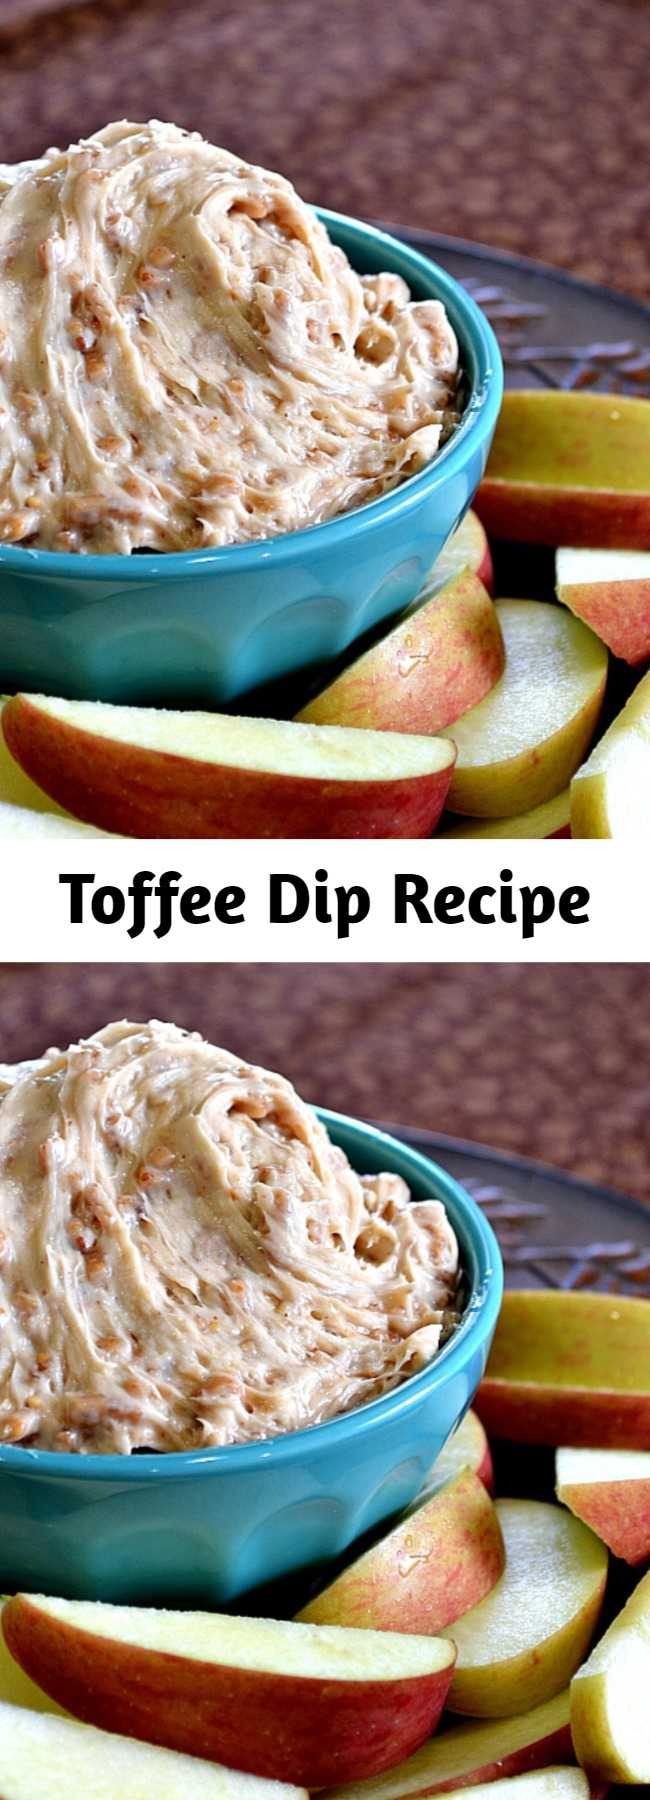 Toffee Dip Recipe - If your guests love caramel apples then they will LOVE this Toffee Dip! Serve this dip with apple slices. Tastes like a caramel apple without the chewy sticky mess.